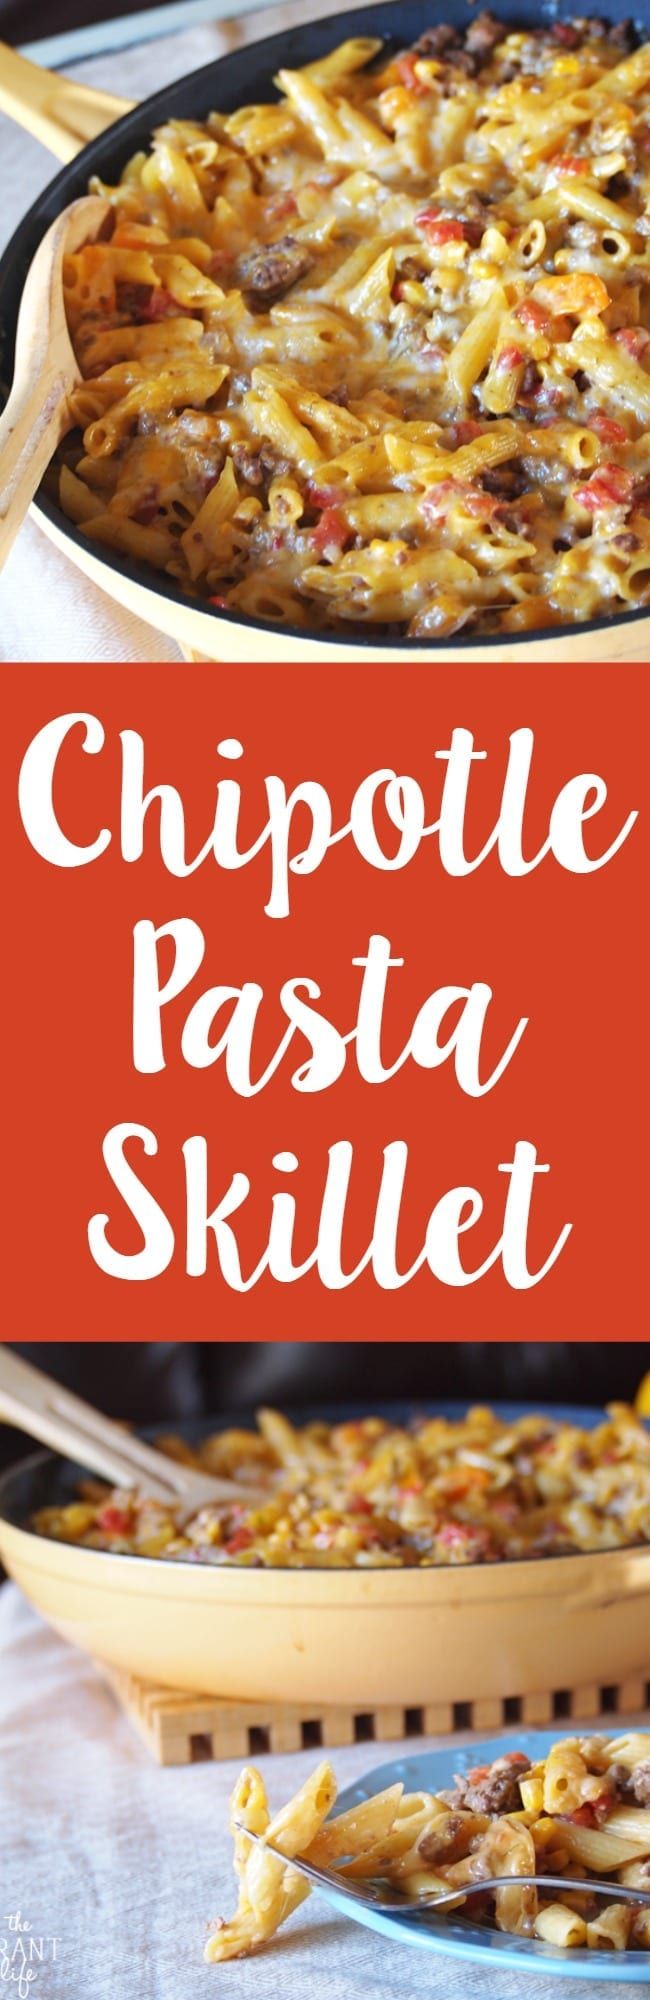 Chipotle pasta skillet recipe!  Made all in one pan and done in under 30 minutes